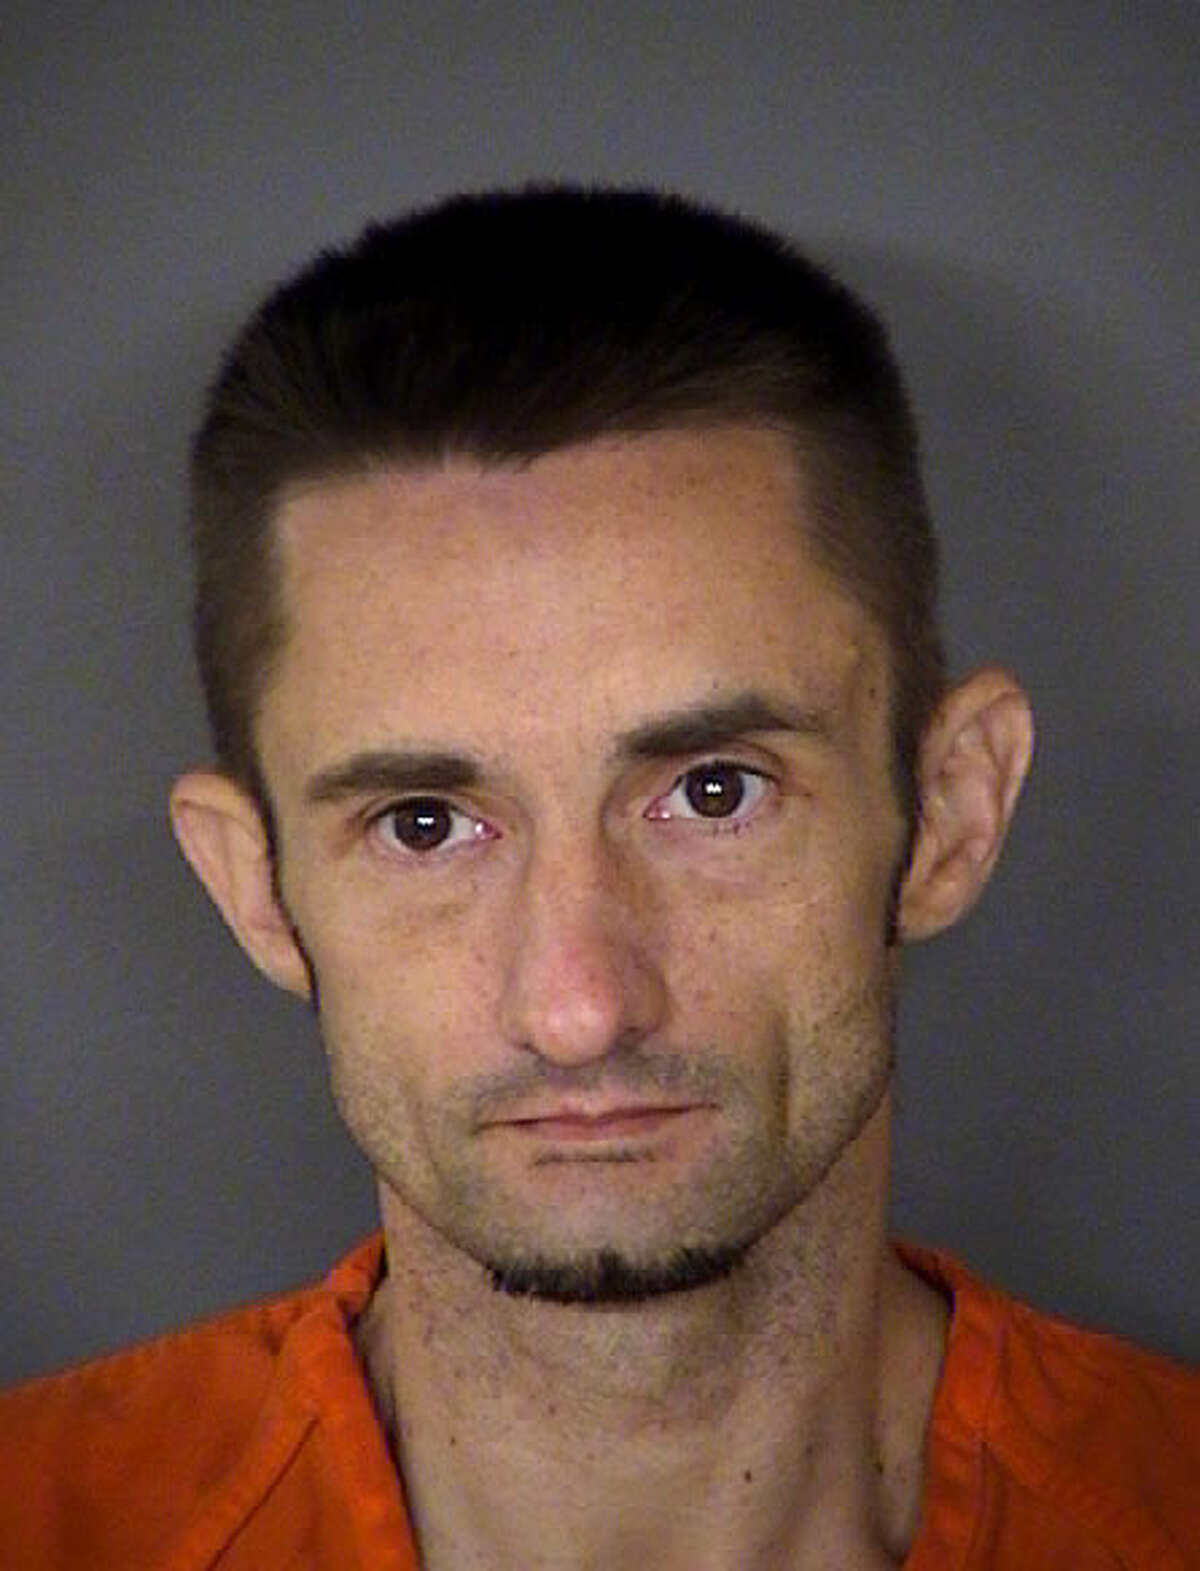 Billy Wayne Young, 35, held in the Bexar County Jail in lieu of $50,000 bail.